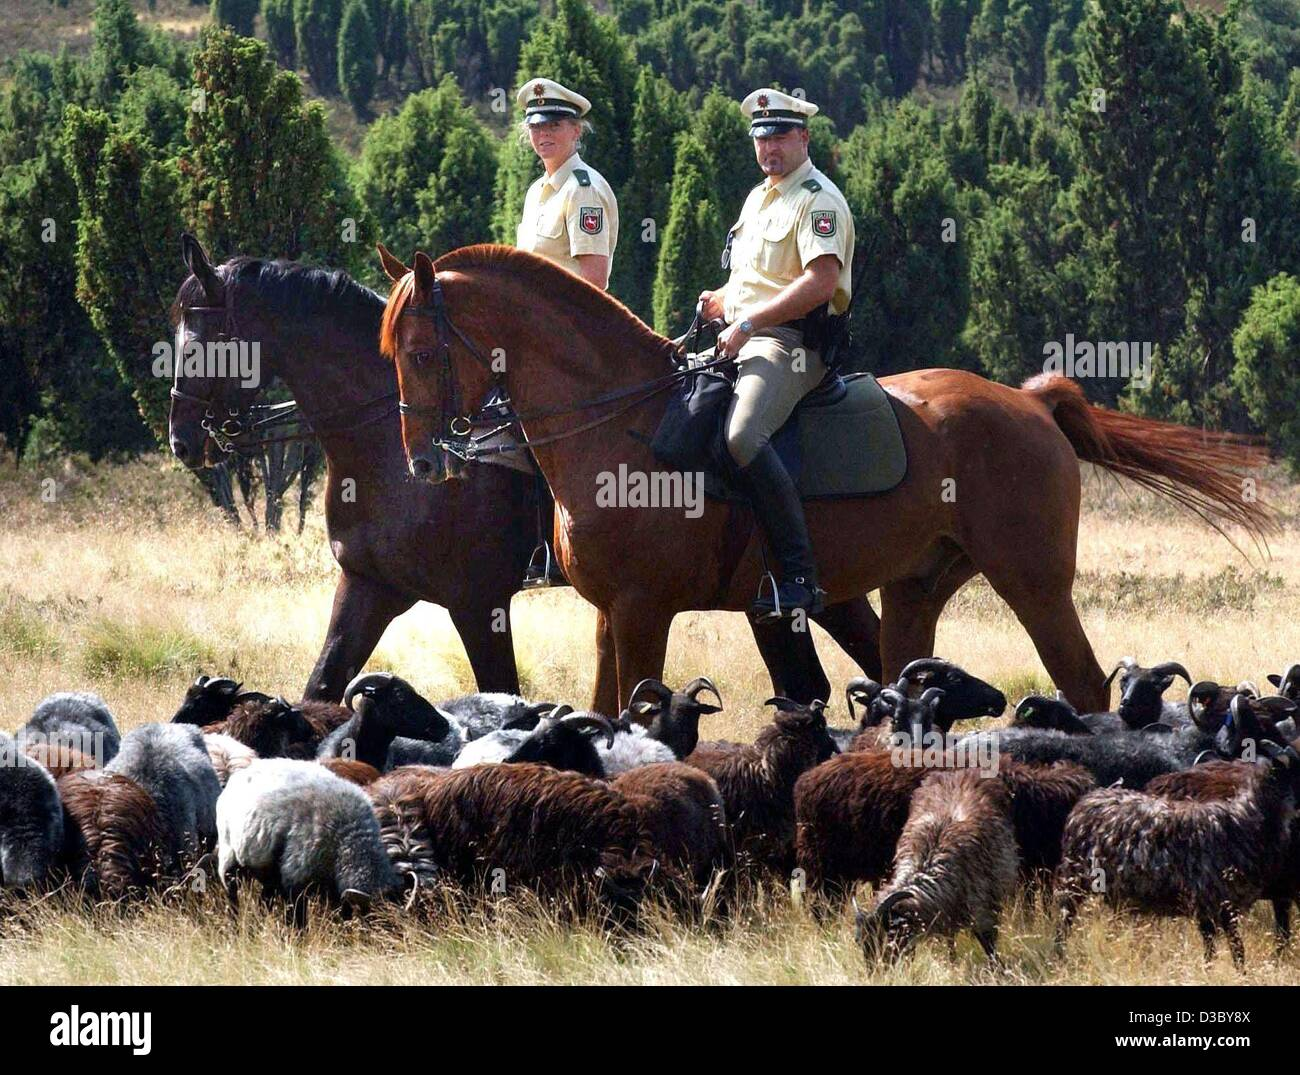 how to become a mounted police